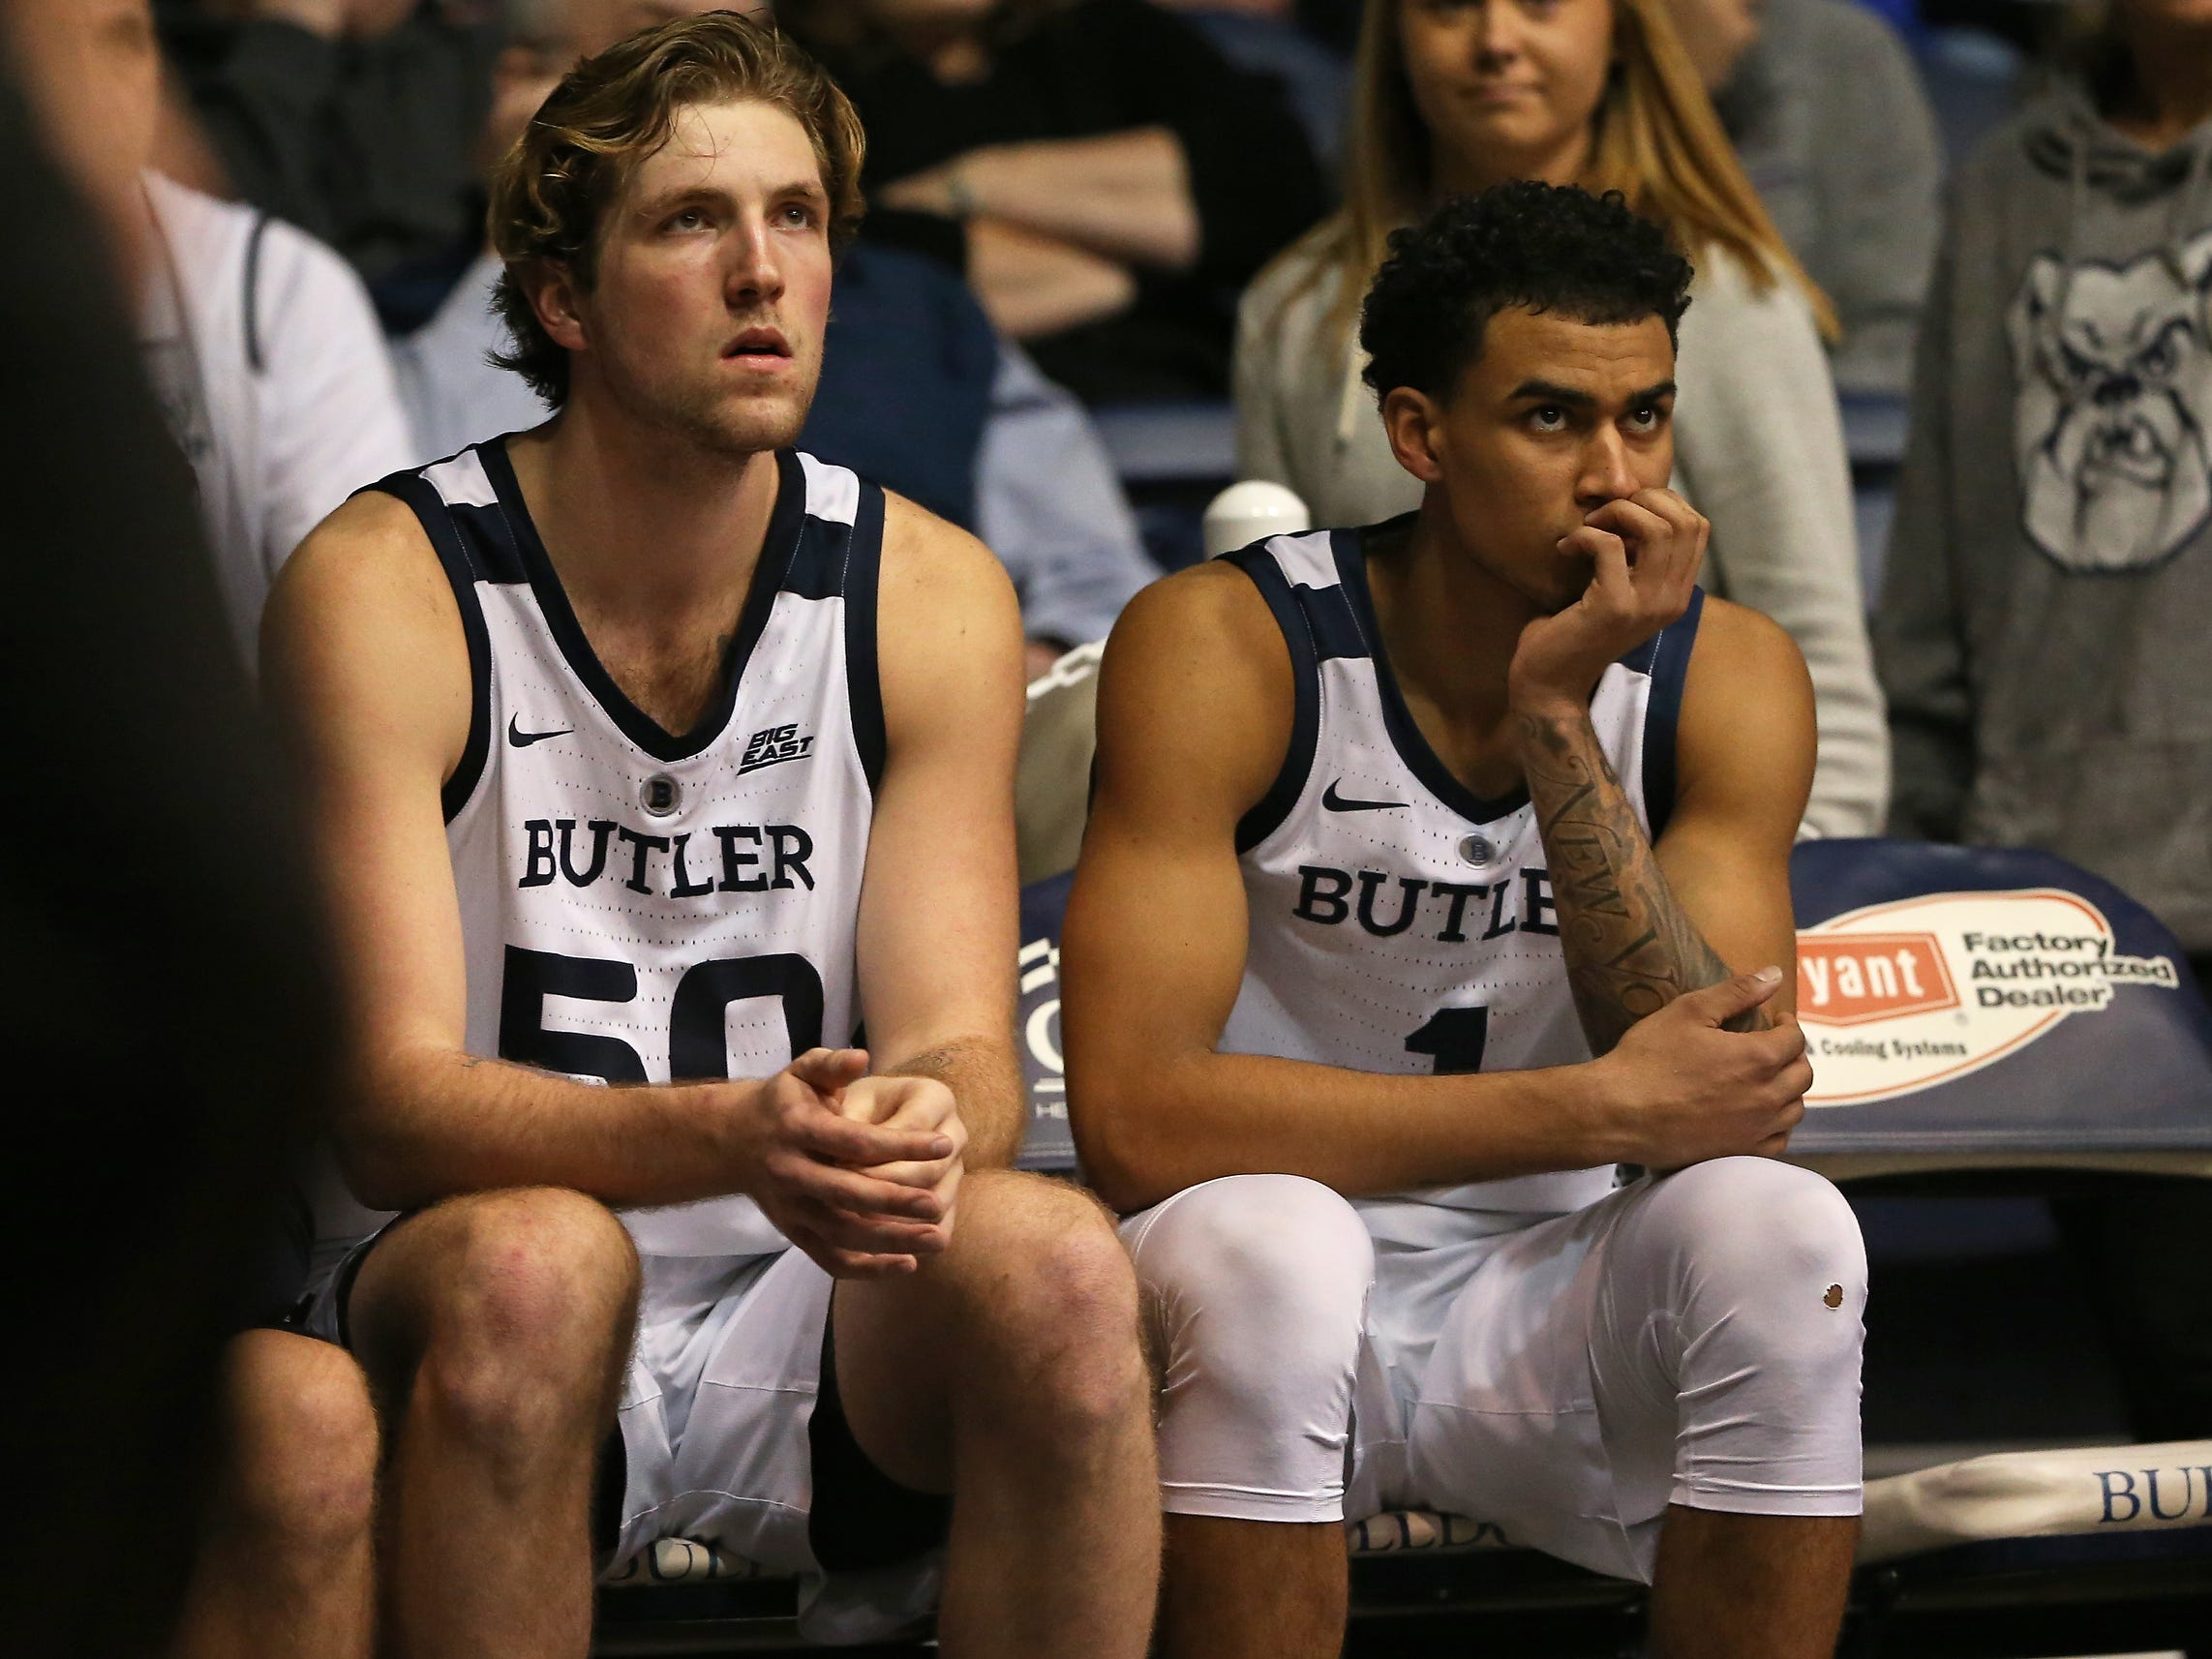 Butler Bulldogs forward Joey Brunk (50) and forward Jordan Tucker (1) watch the remaining minute of the second half of game action between Butler University and Georgetown University, at Hinkle Fieldhouse in Indianapolis, Indiana on Wednesday, Jan. 2, 2019. The Butler Bulldogs fell to the Georgetown Hoyas 84-76.